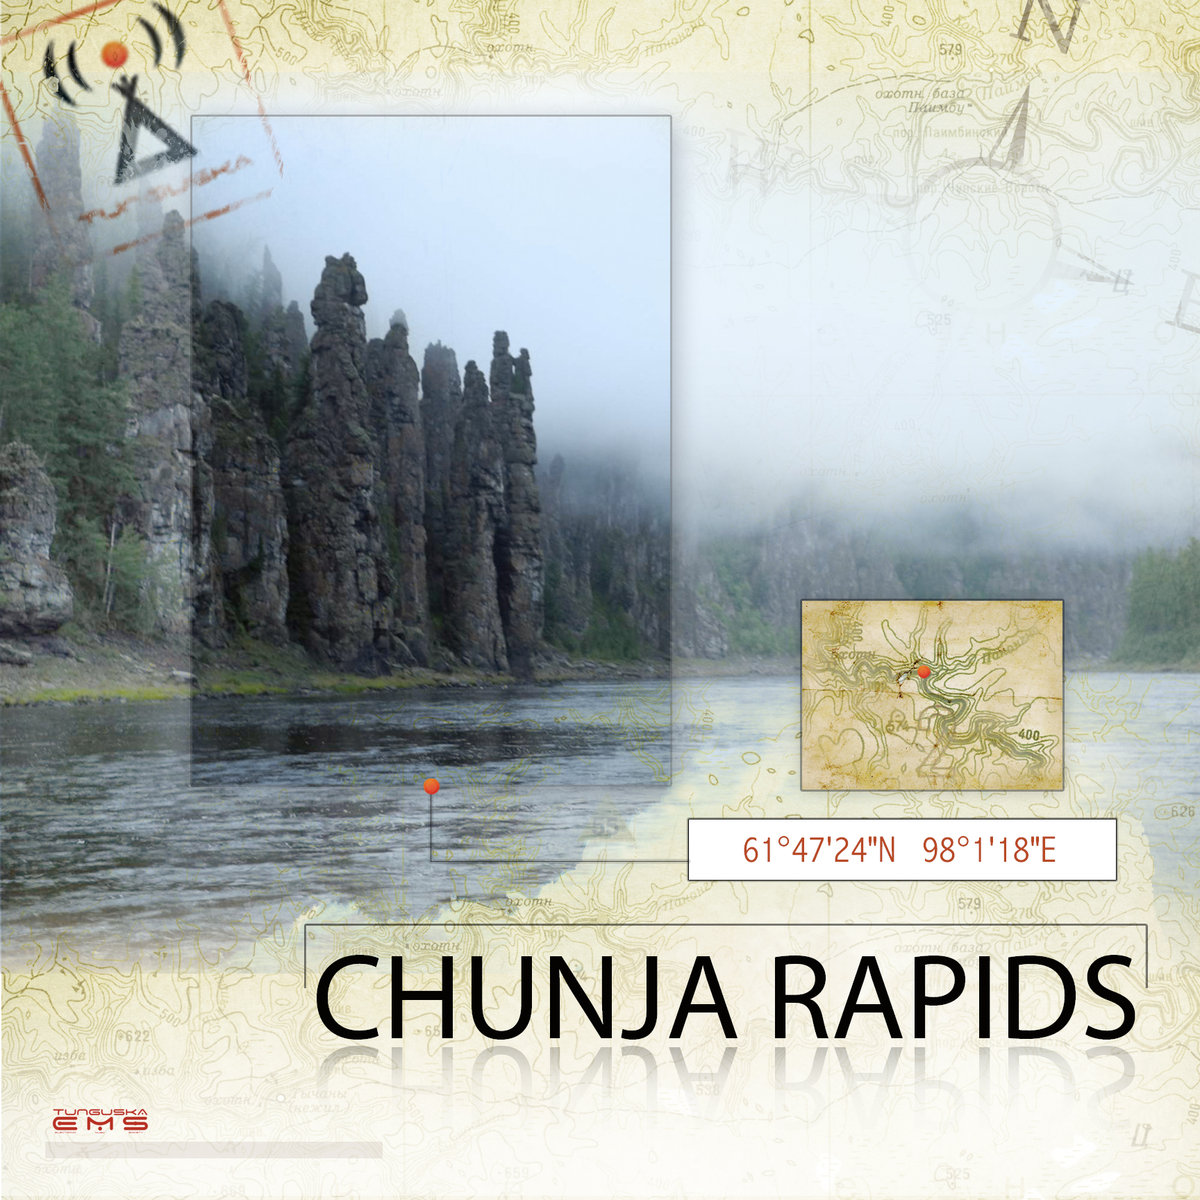 WMRI - The Dream of Spheres @ 'Point - Chunja Rapids' album (electronic, ambient)